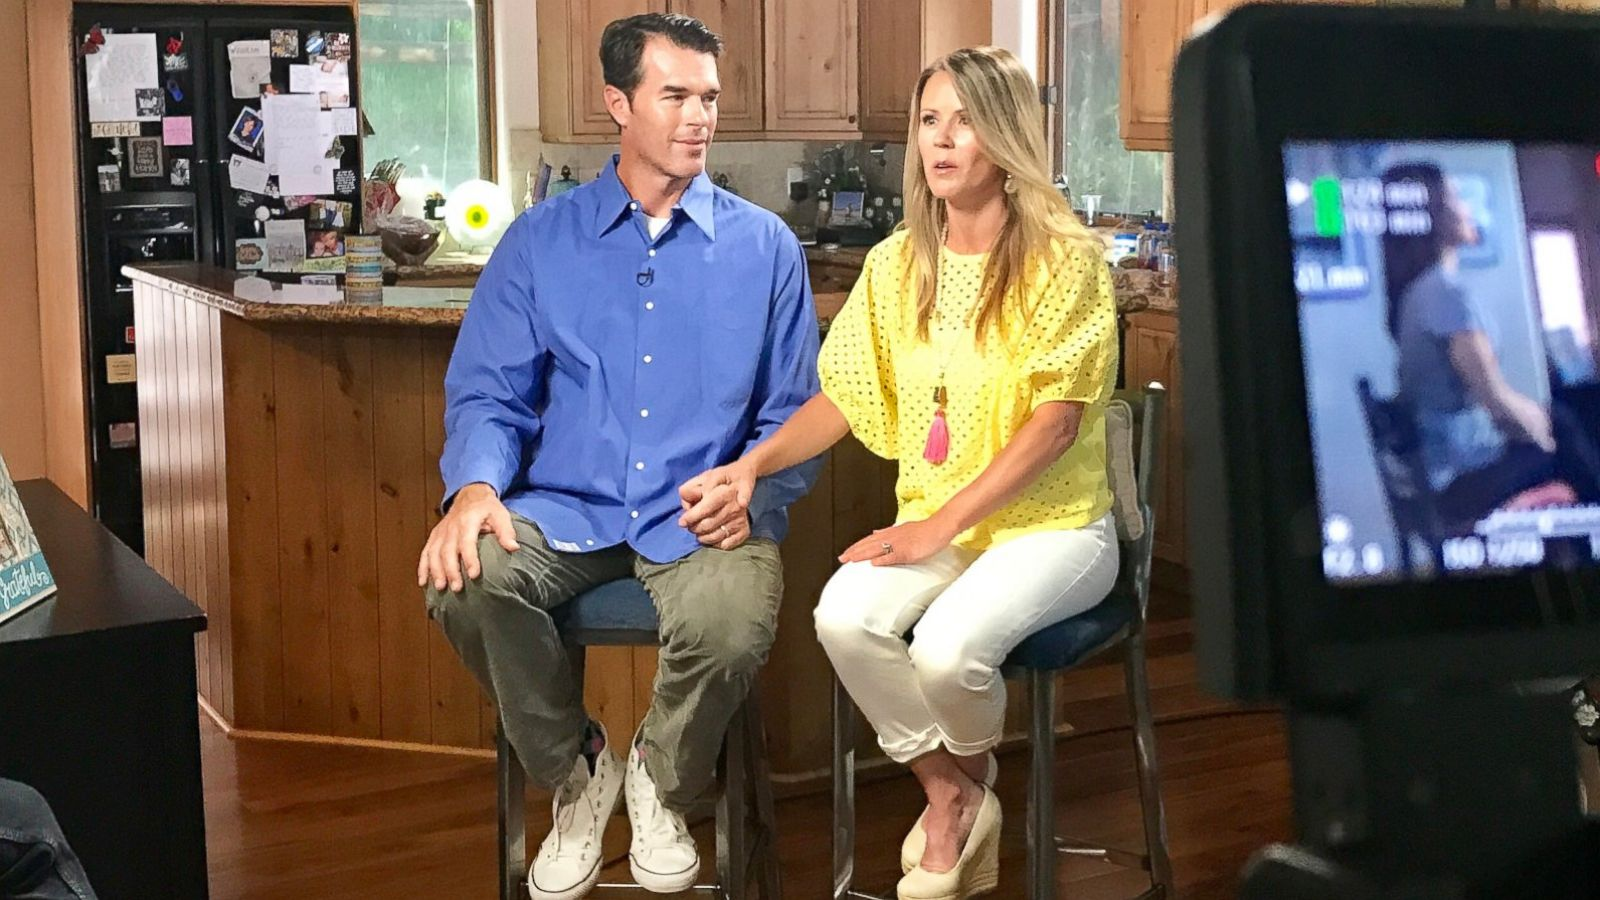 Trista Sutter on What Life Is Like 5 Months After Her Traumatizing Seizure Trista Sutter on What Life Is Like 5 Months After Her Traumatizing Seizure new pictures